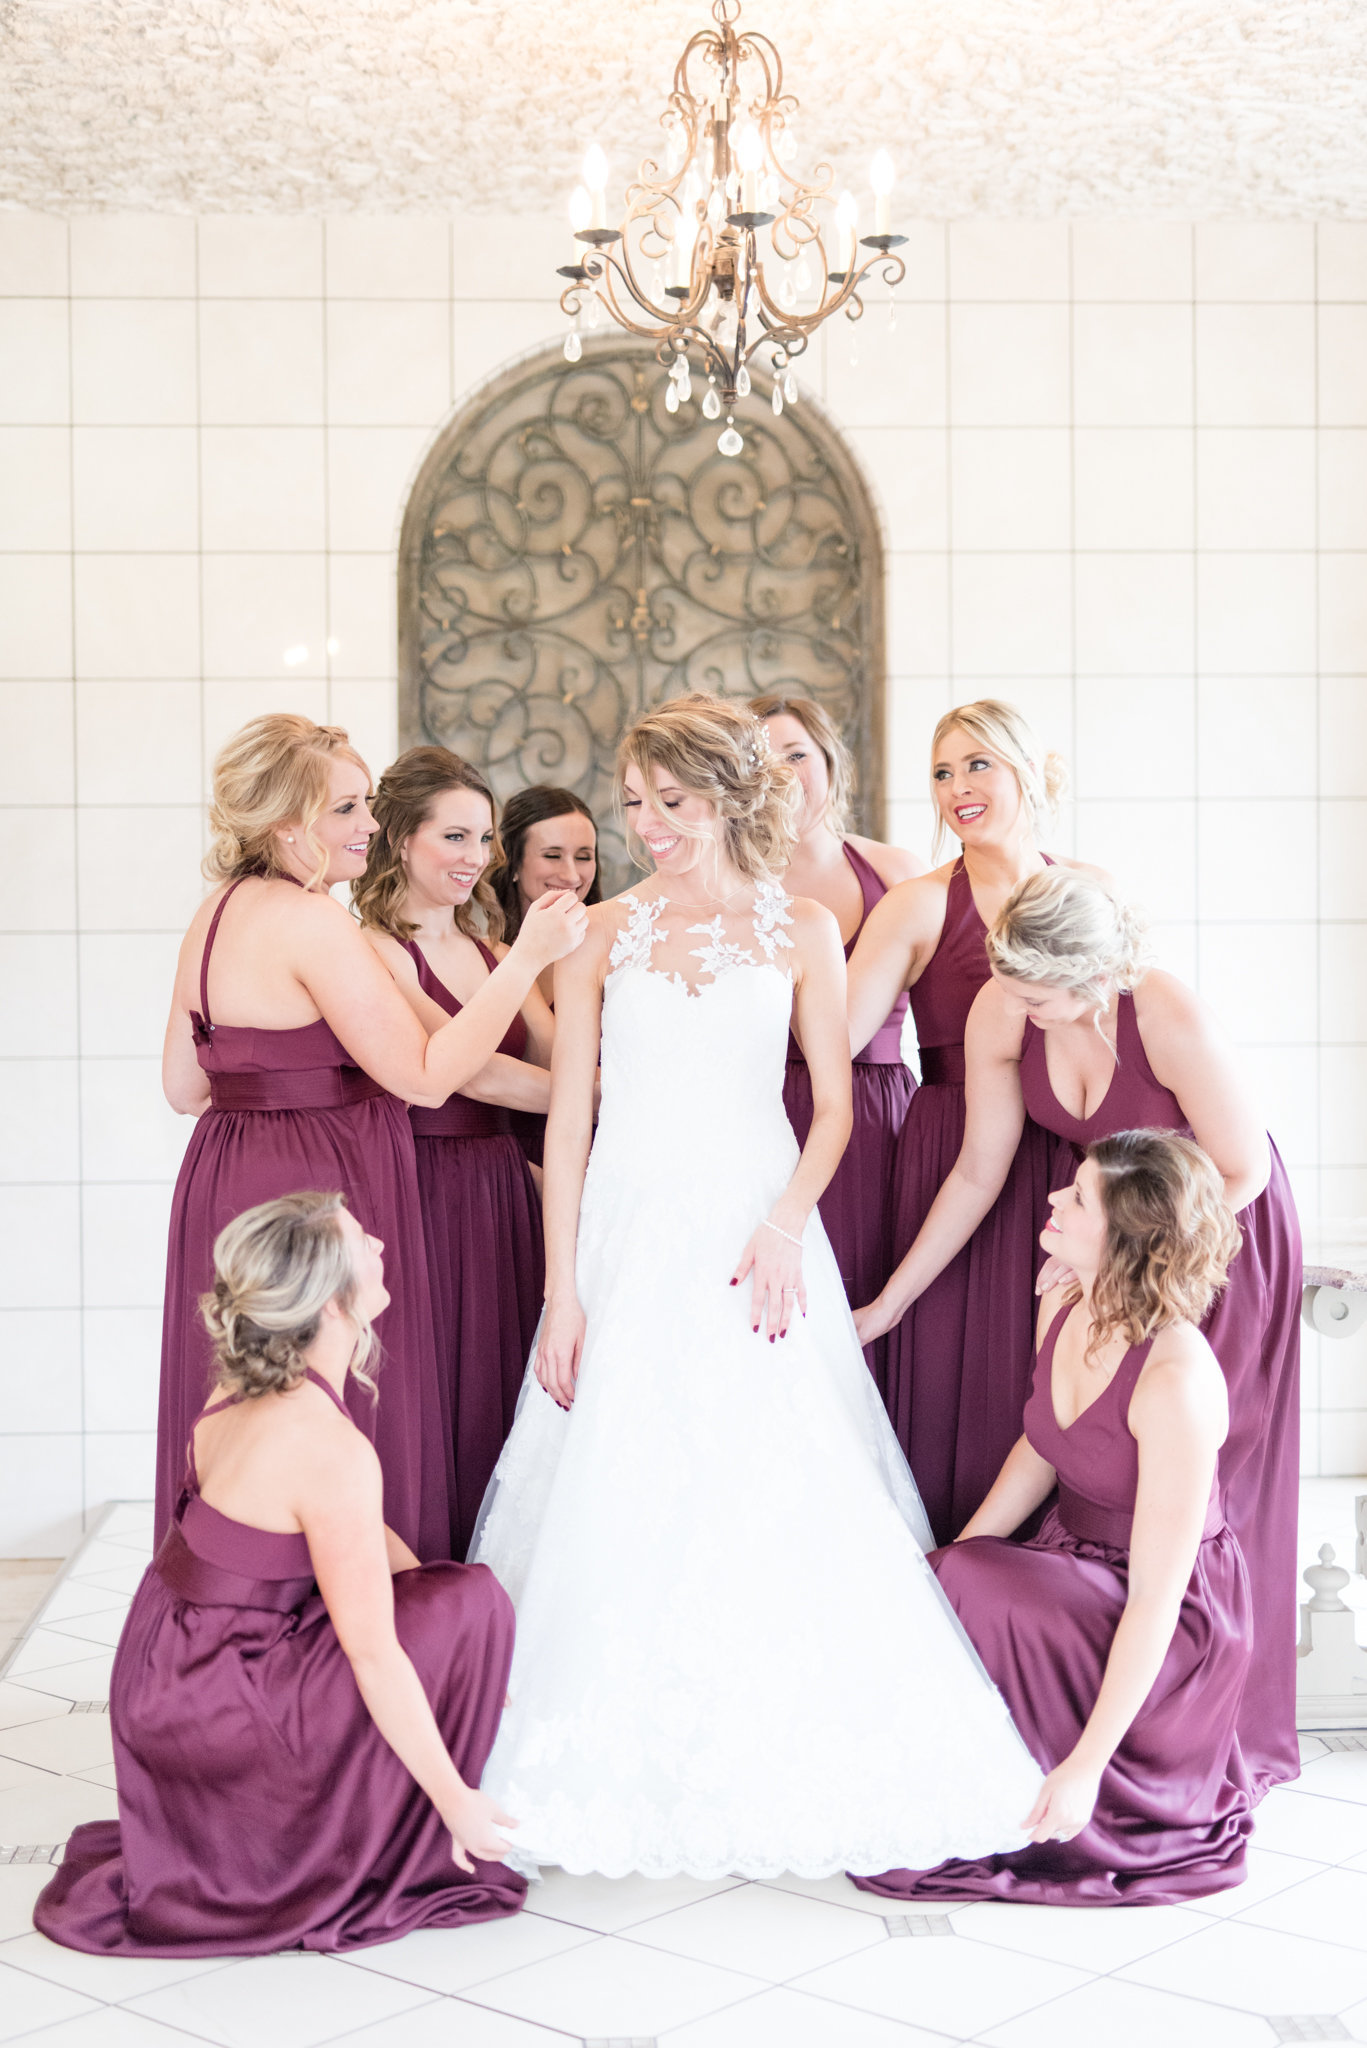 Bridesmaids stand around bride and help her get ready.